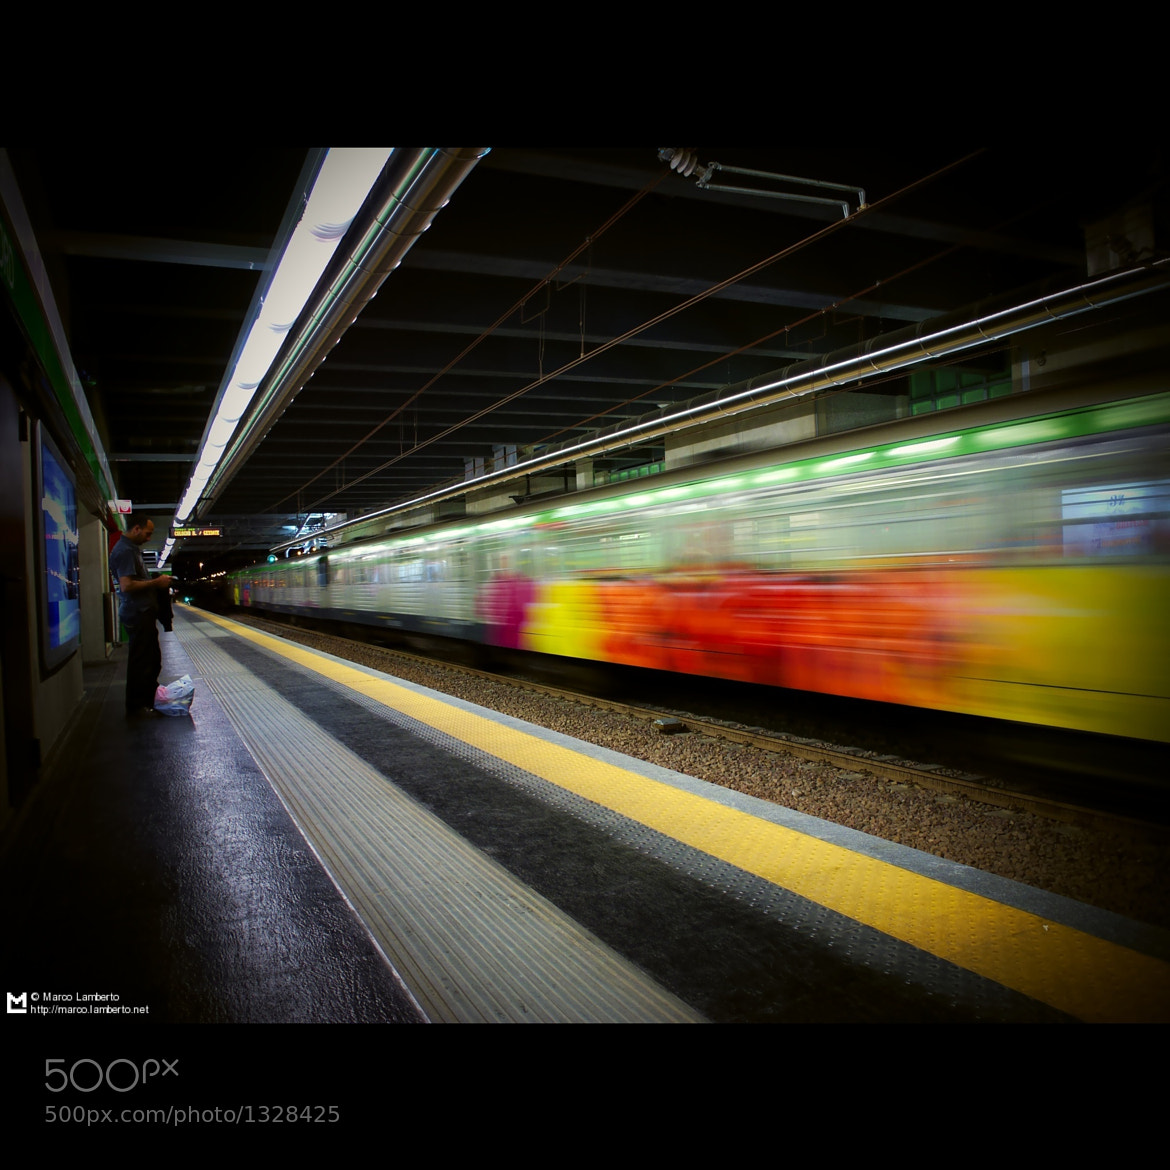 Photograph Waiting - IMG_1388 by Marco Lamberto on 500px